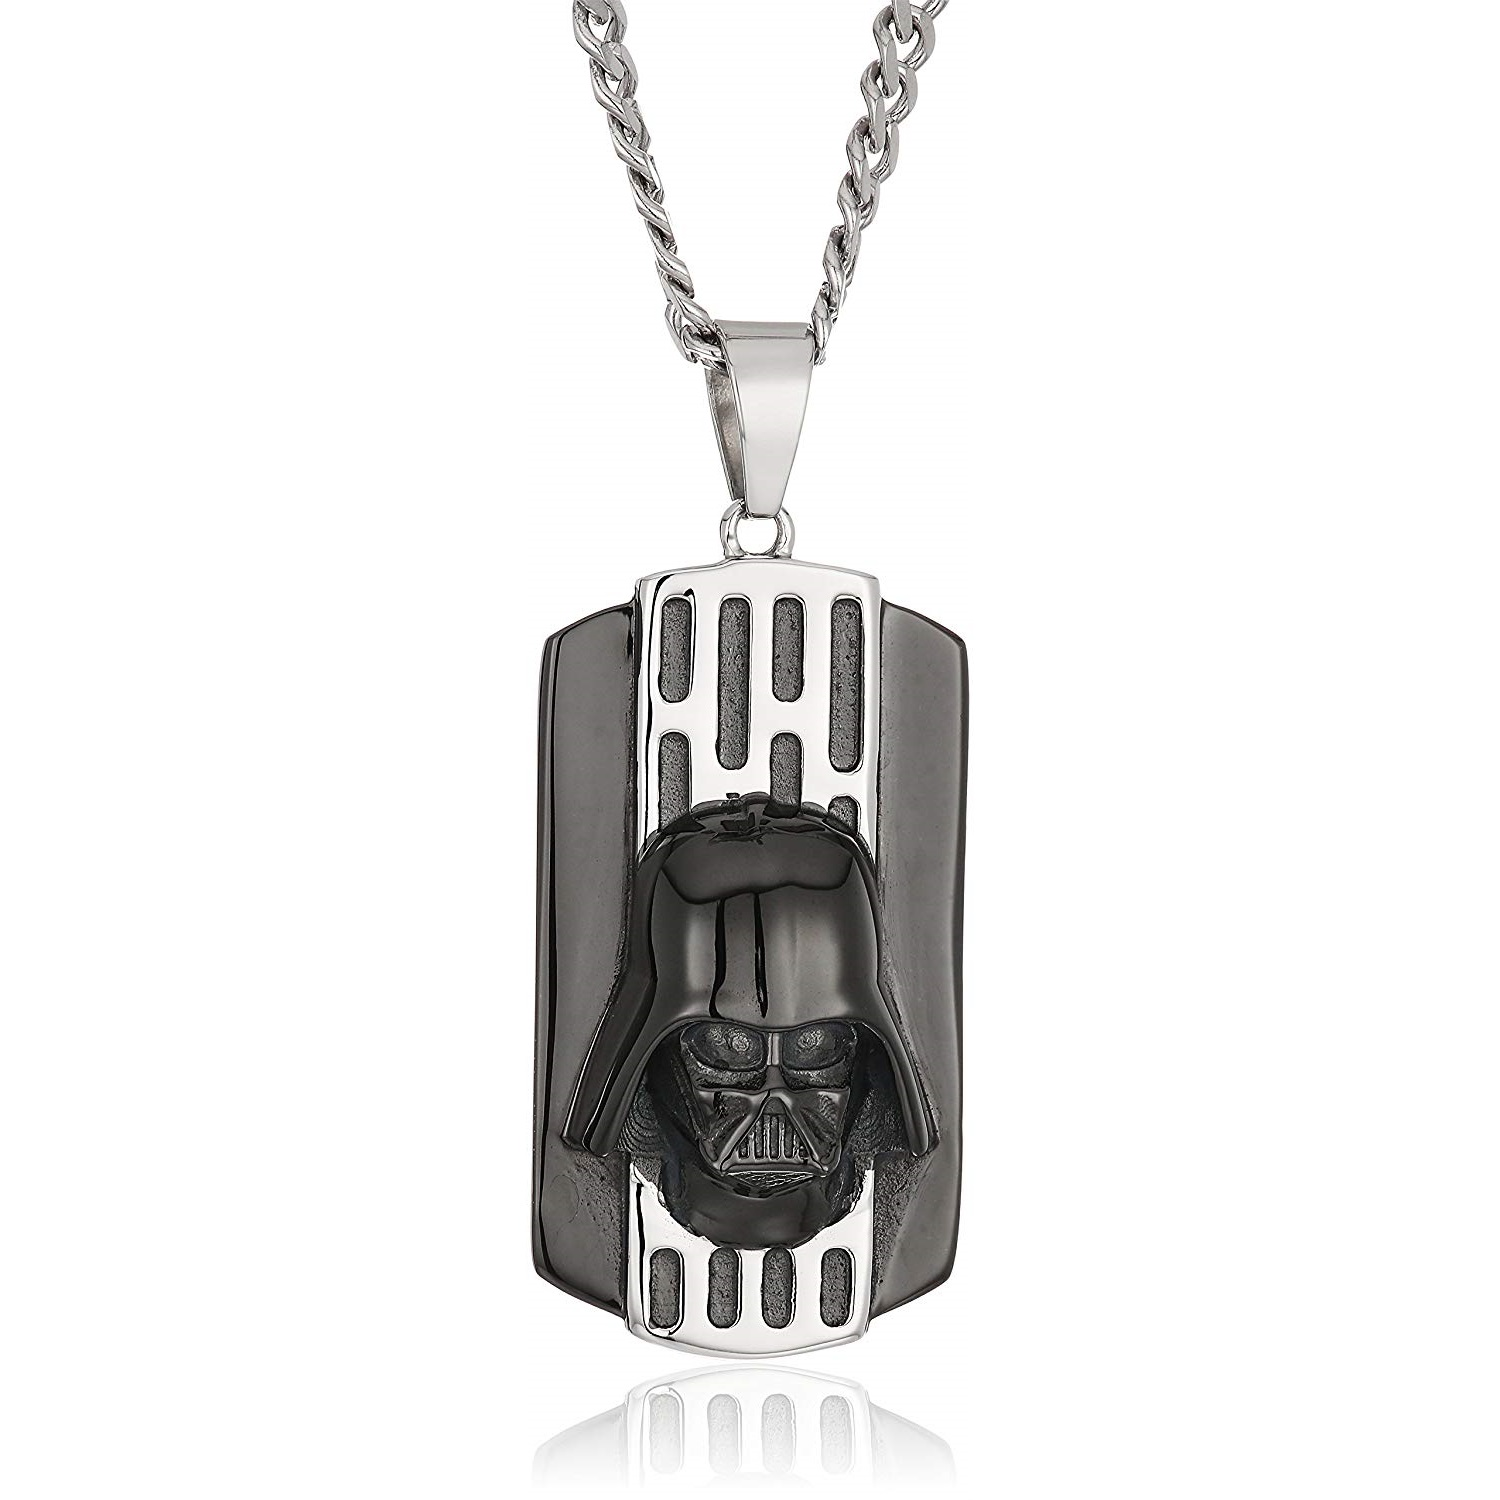 Body Vibe x Star Wars Darth Vader Back Plated Necklace on Amazon